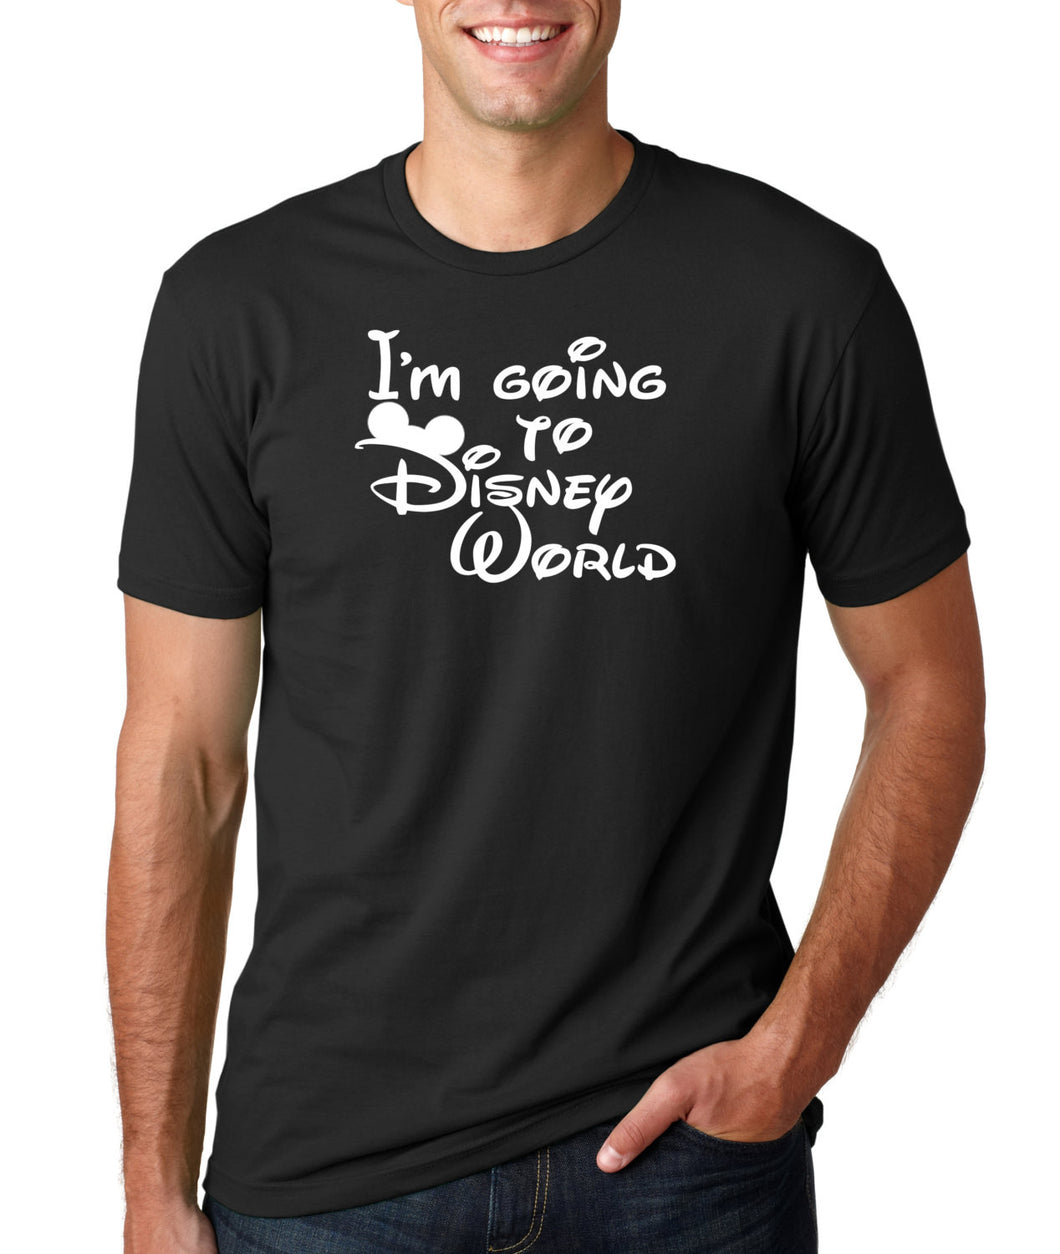 9829cc47271fb I'm going to Disney World Shirt,Mickey Mouse shirt, Dad shirt,Mickey ...